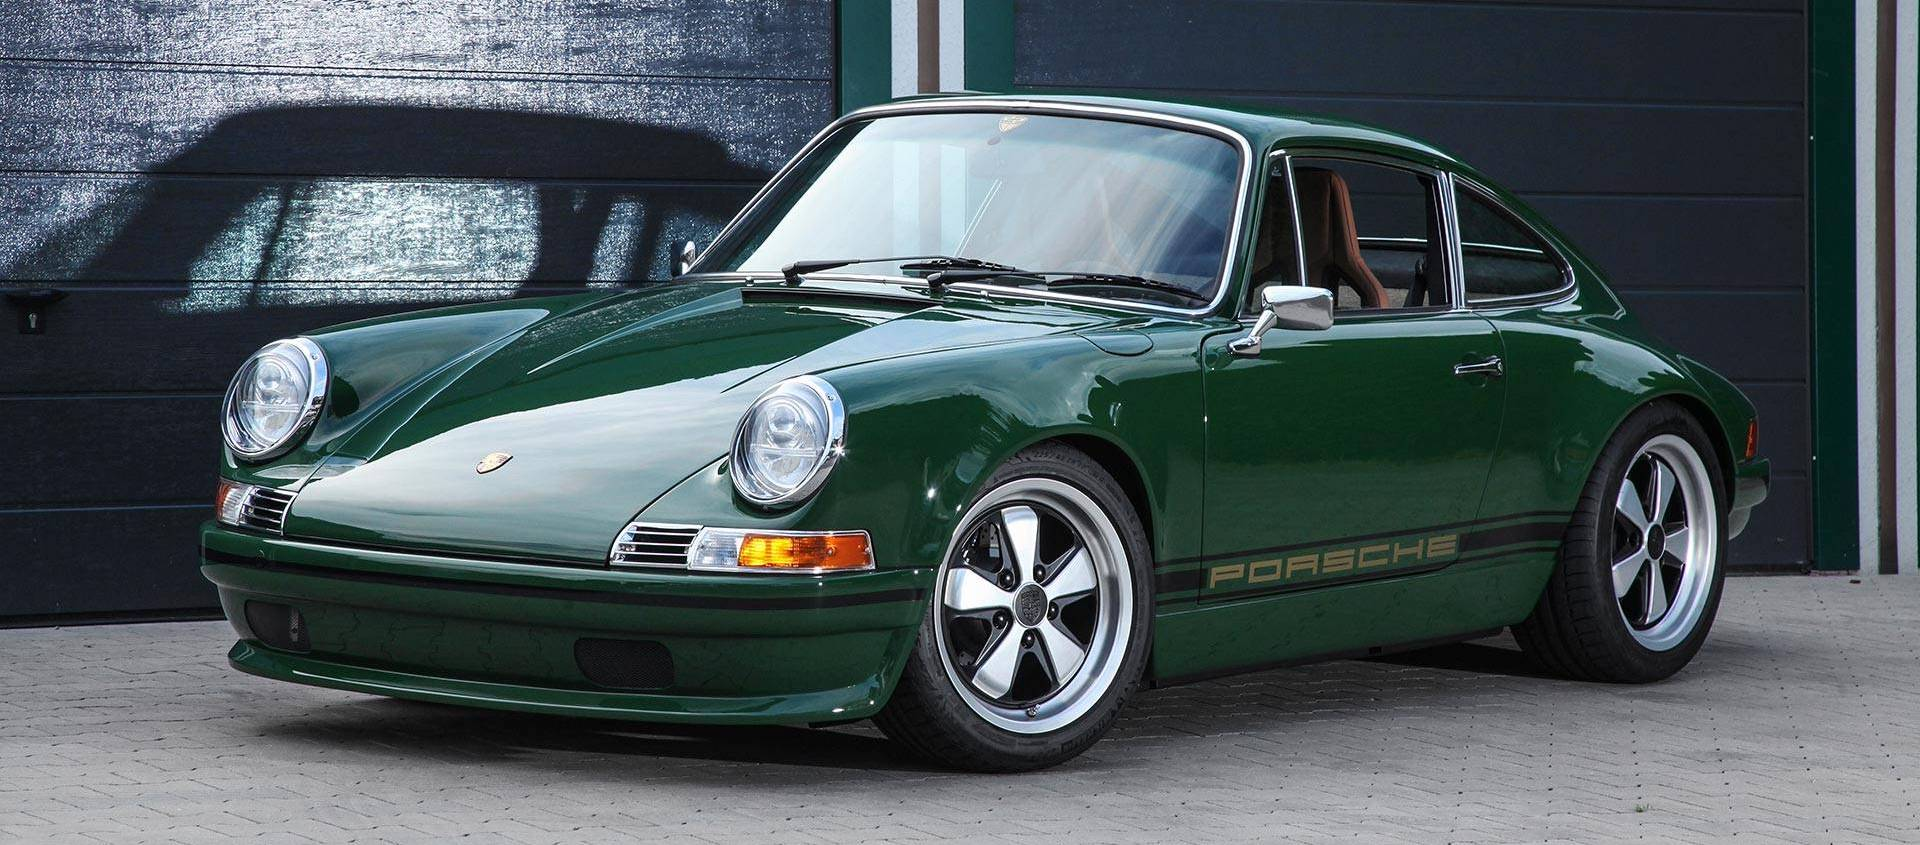 964 Porsche 911 Gets Vintage Look From German Tuner